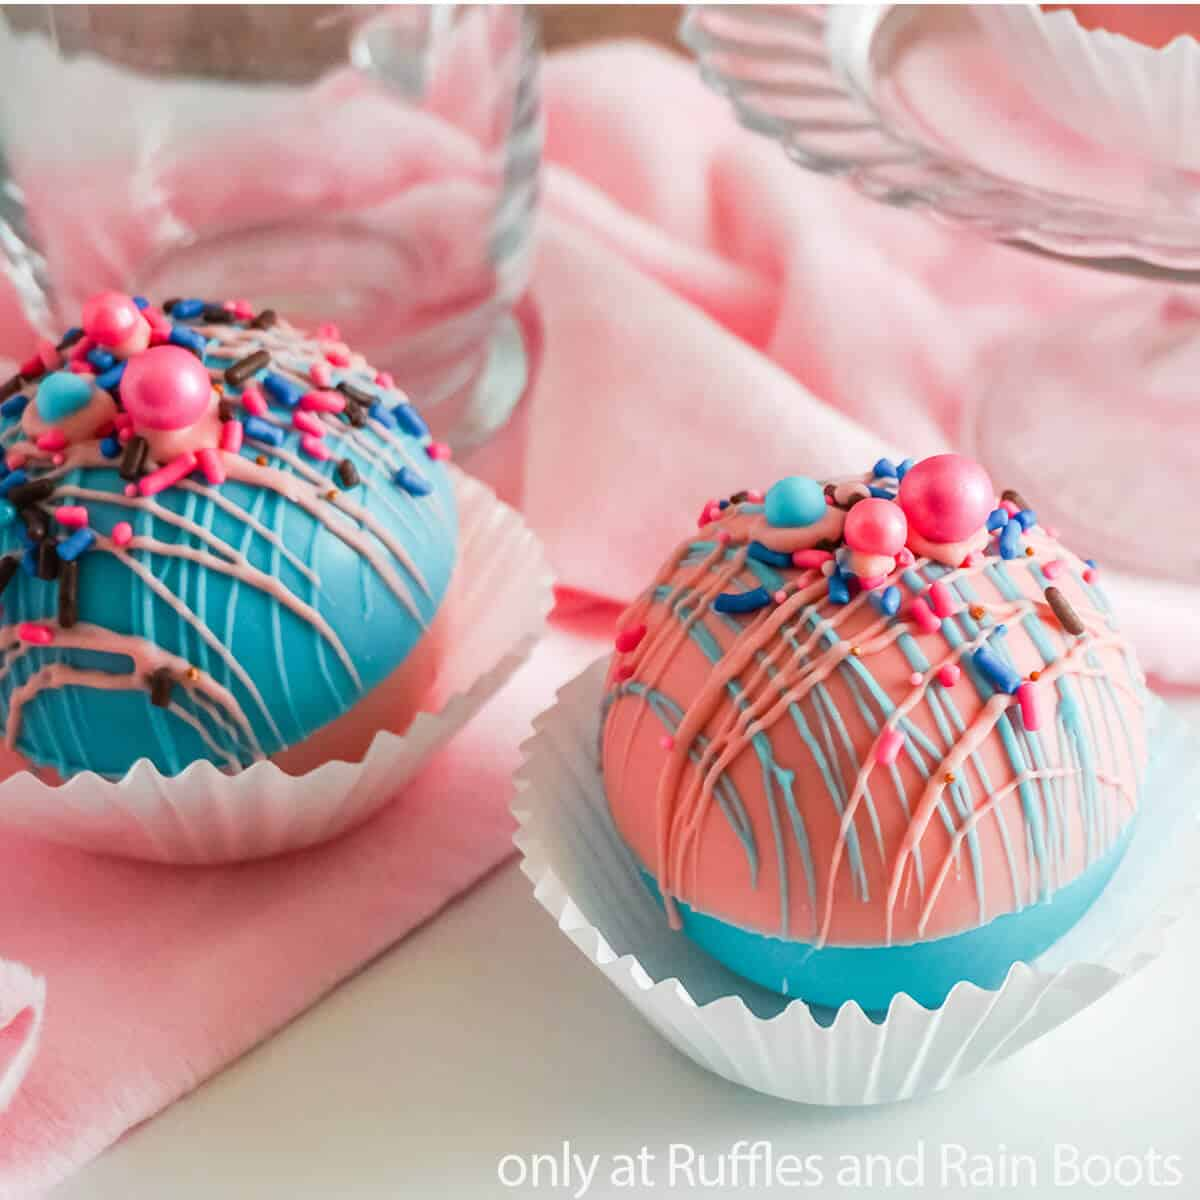 simple hot chocolate bomb recipe with cotton candy flavoring